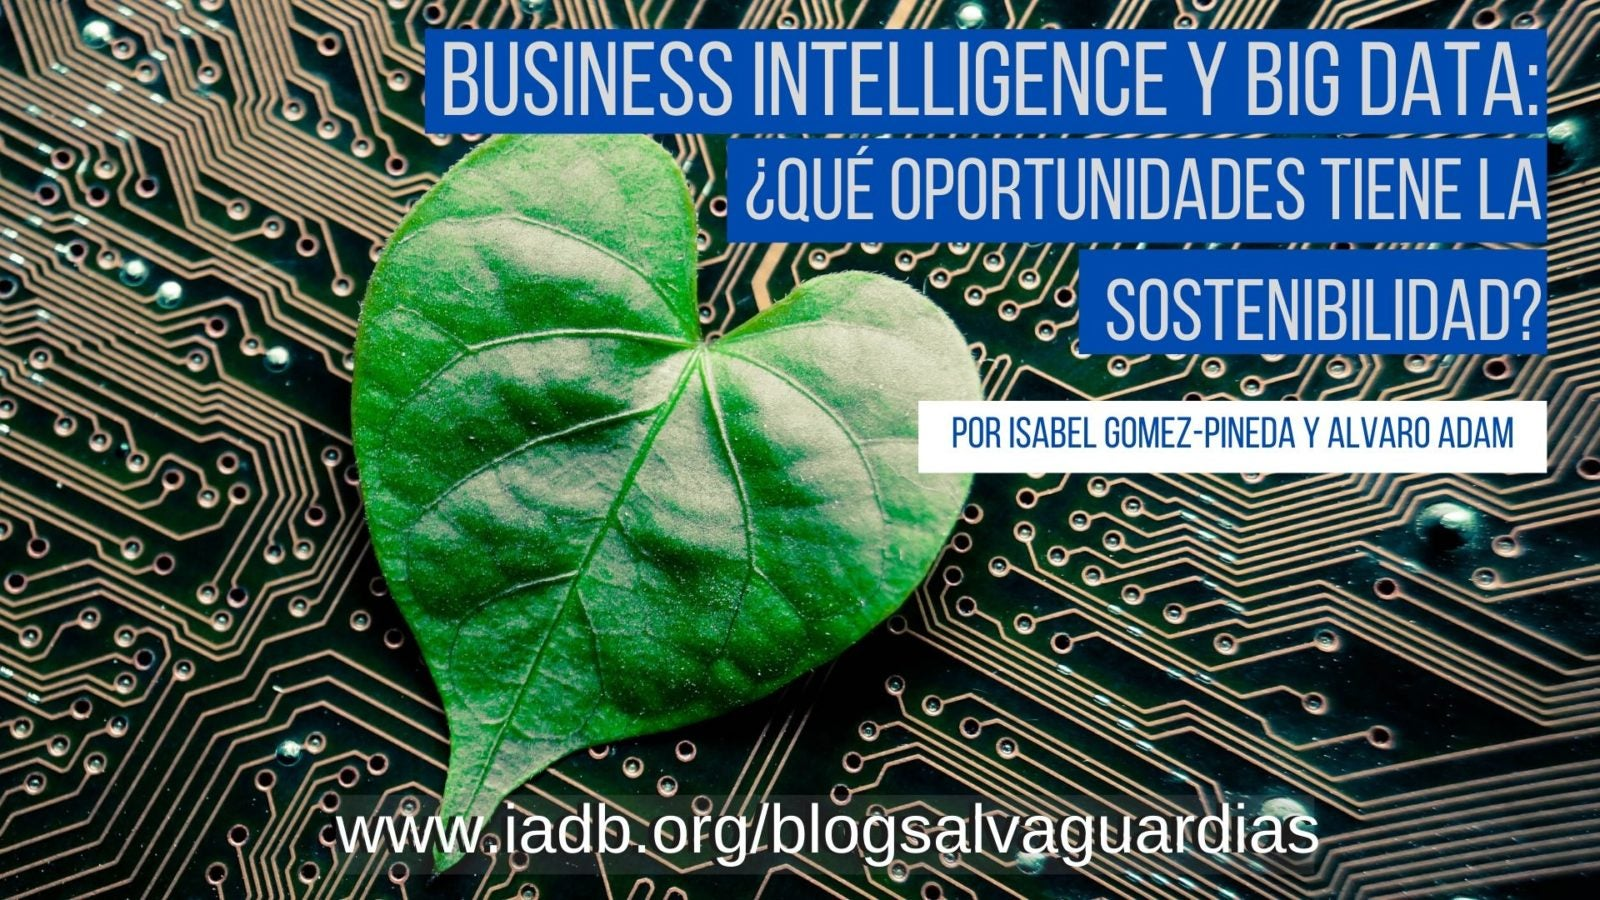 Business intelligence y Big Data: ¿Qué oportunidades tiene la sostenibilidad?